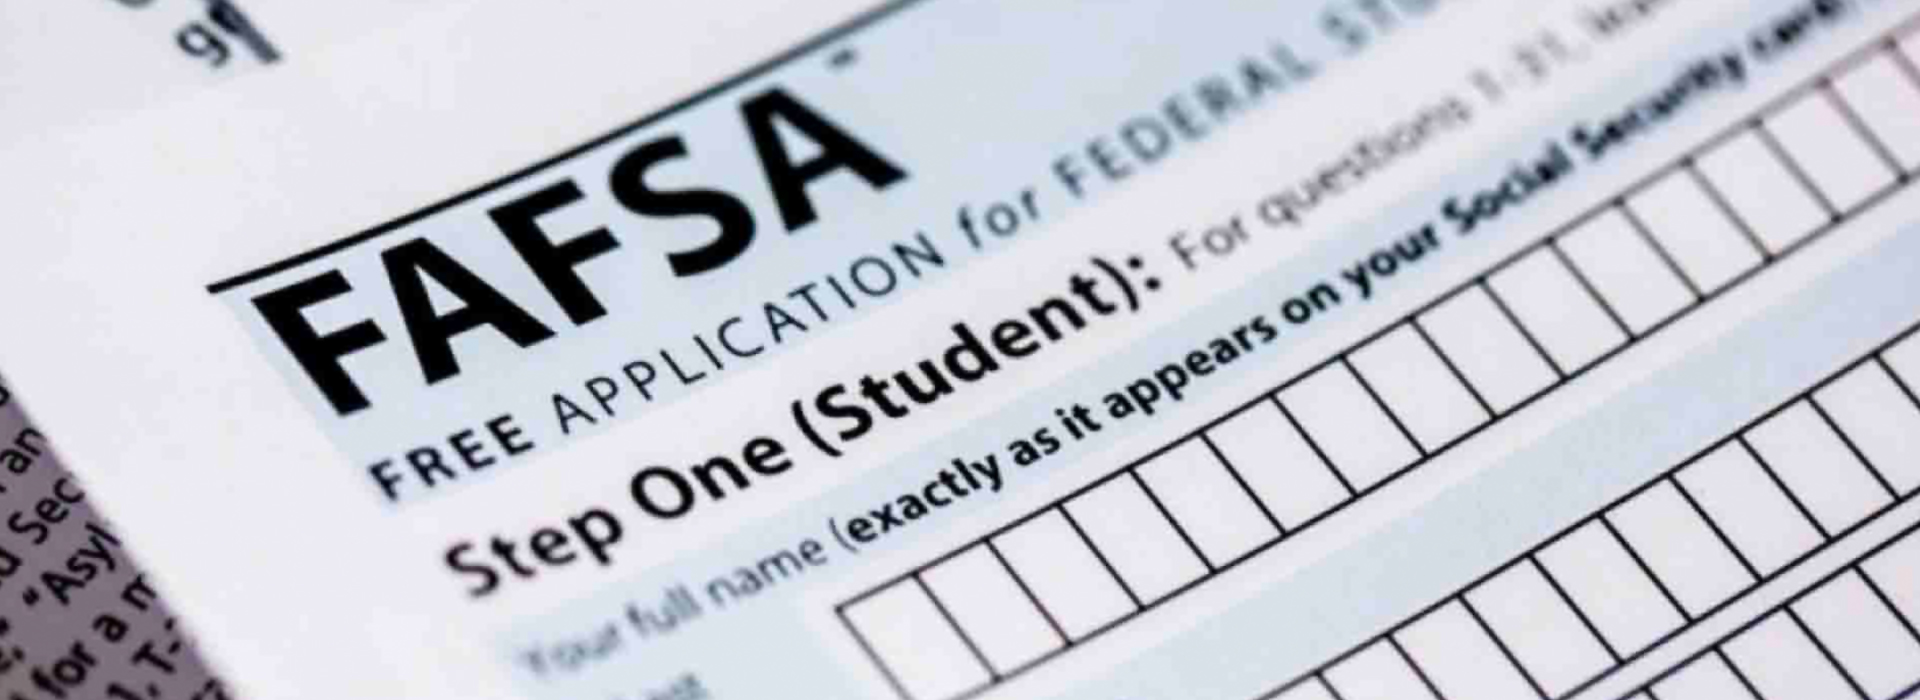 Cal State San Bernardino hosts 'Super Saturday' financial aid workshop with Cash for College